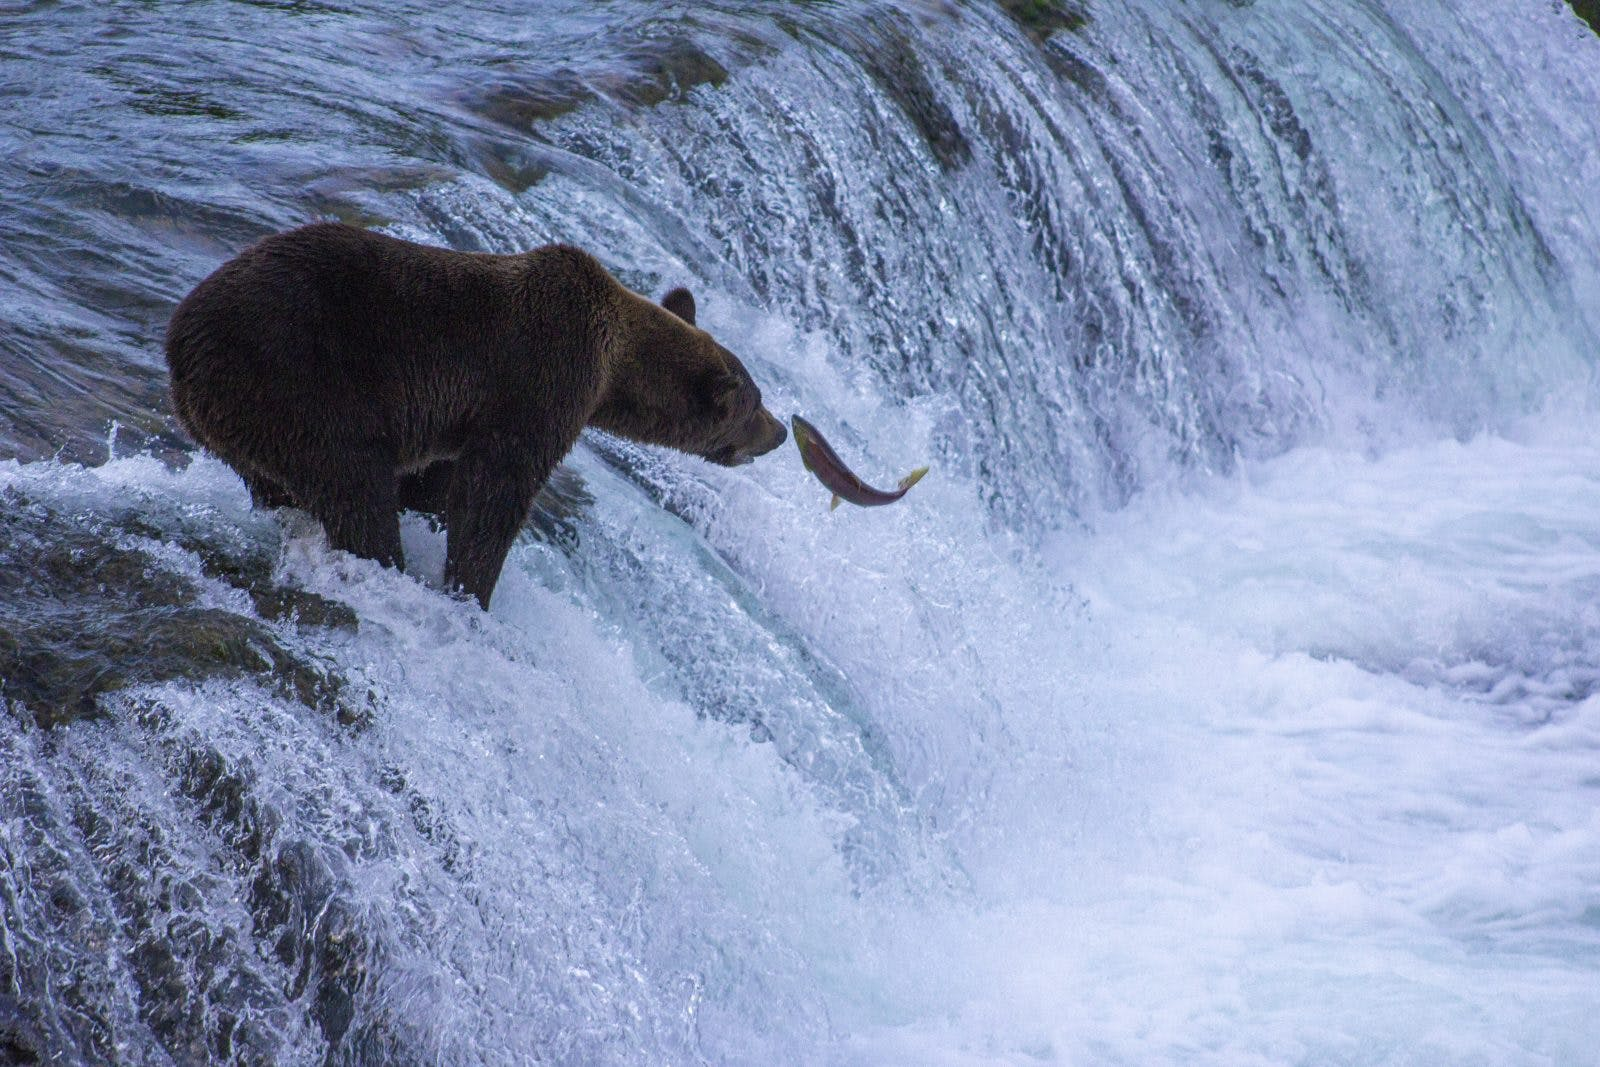 A brown bear waiting for the right salmon in Katmai National Park. Photo by: Sam Carter